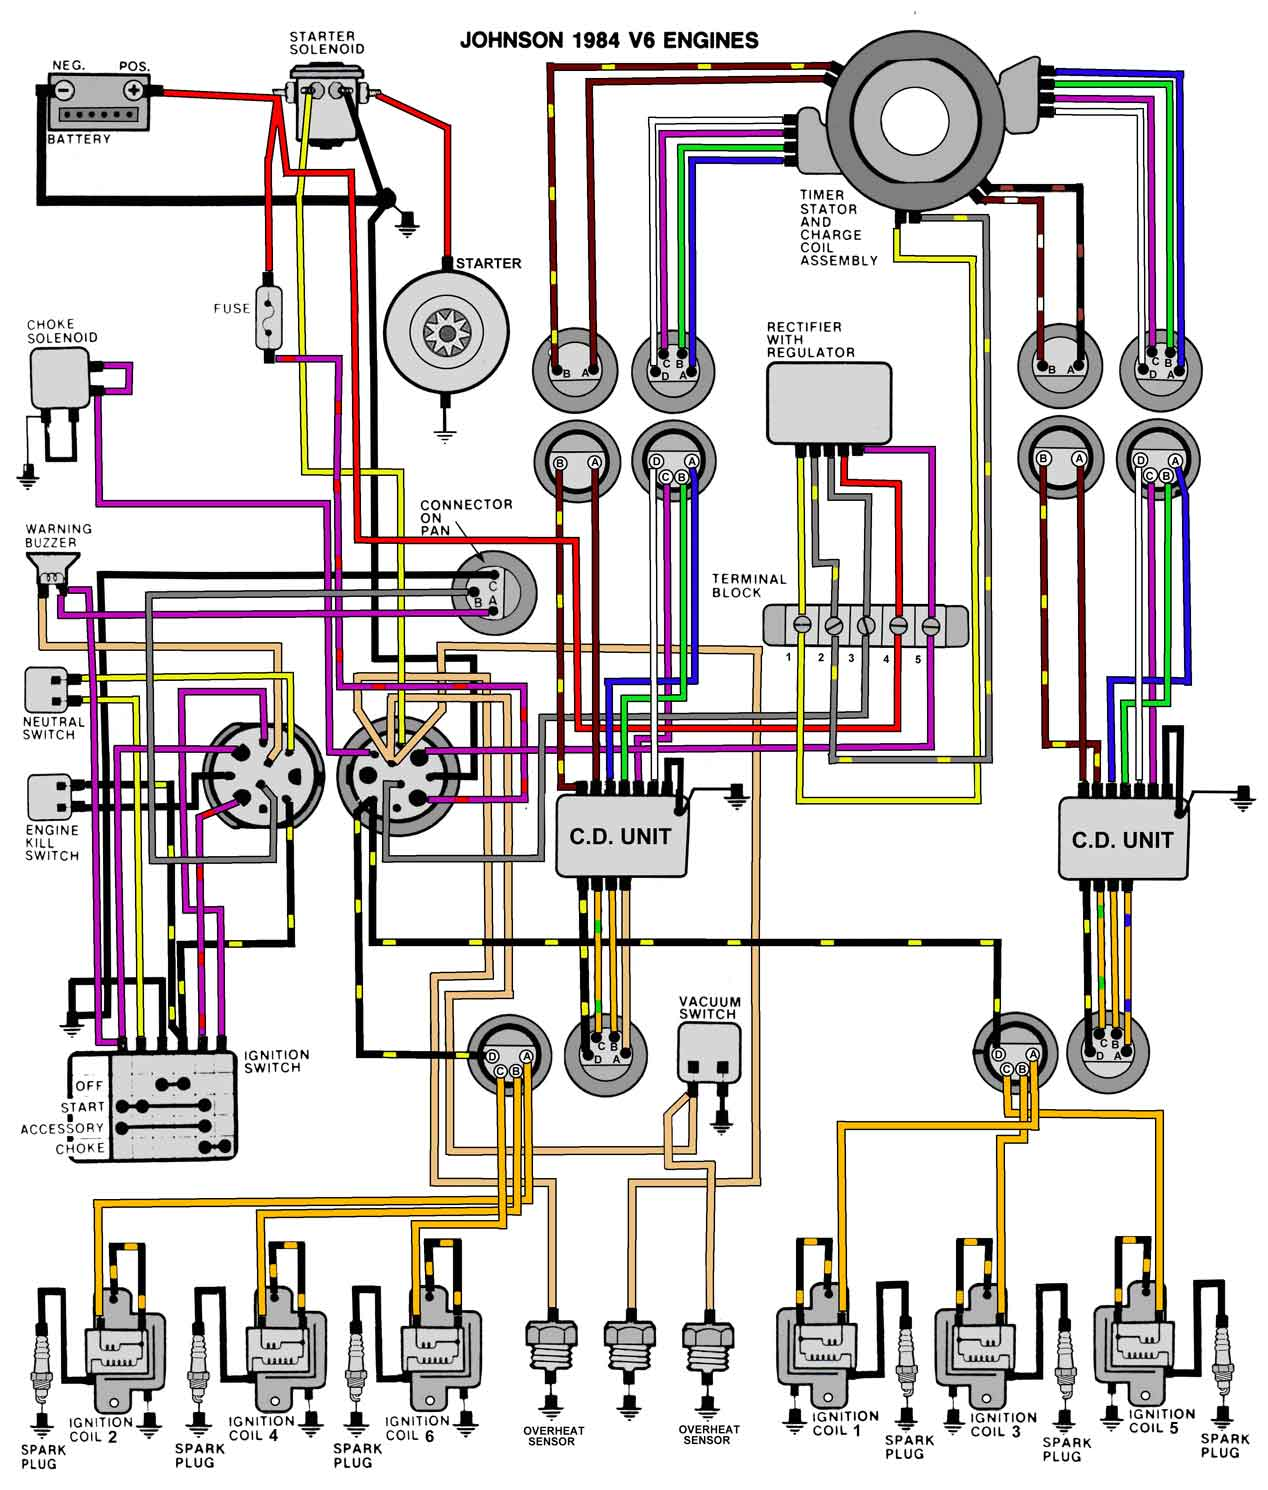 84_V6 mastertech marine evinrude johnson outboard wiring diagrams omc wiring harness diagram at pacquiaovsvargaslive.co